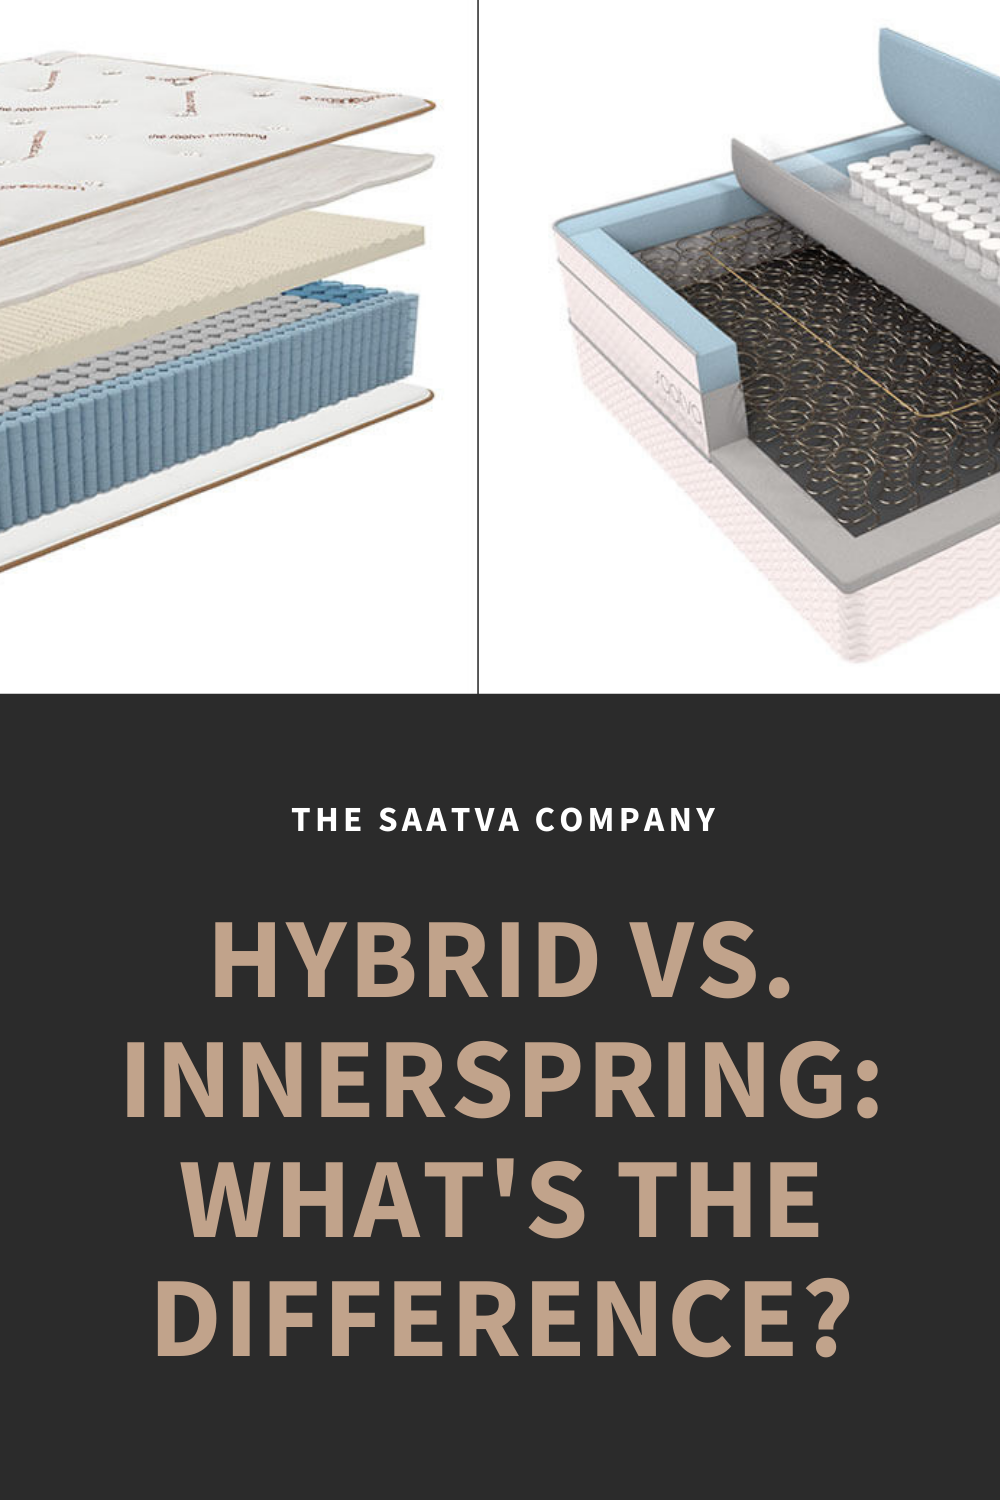 Hybrid Vs Innerspring What S The Difference In 2020 This Or That Questions Hybrid Mattress Hybrids